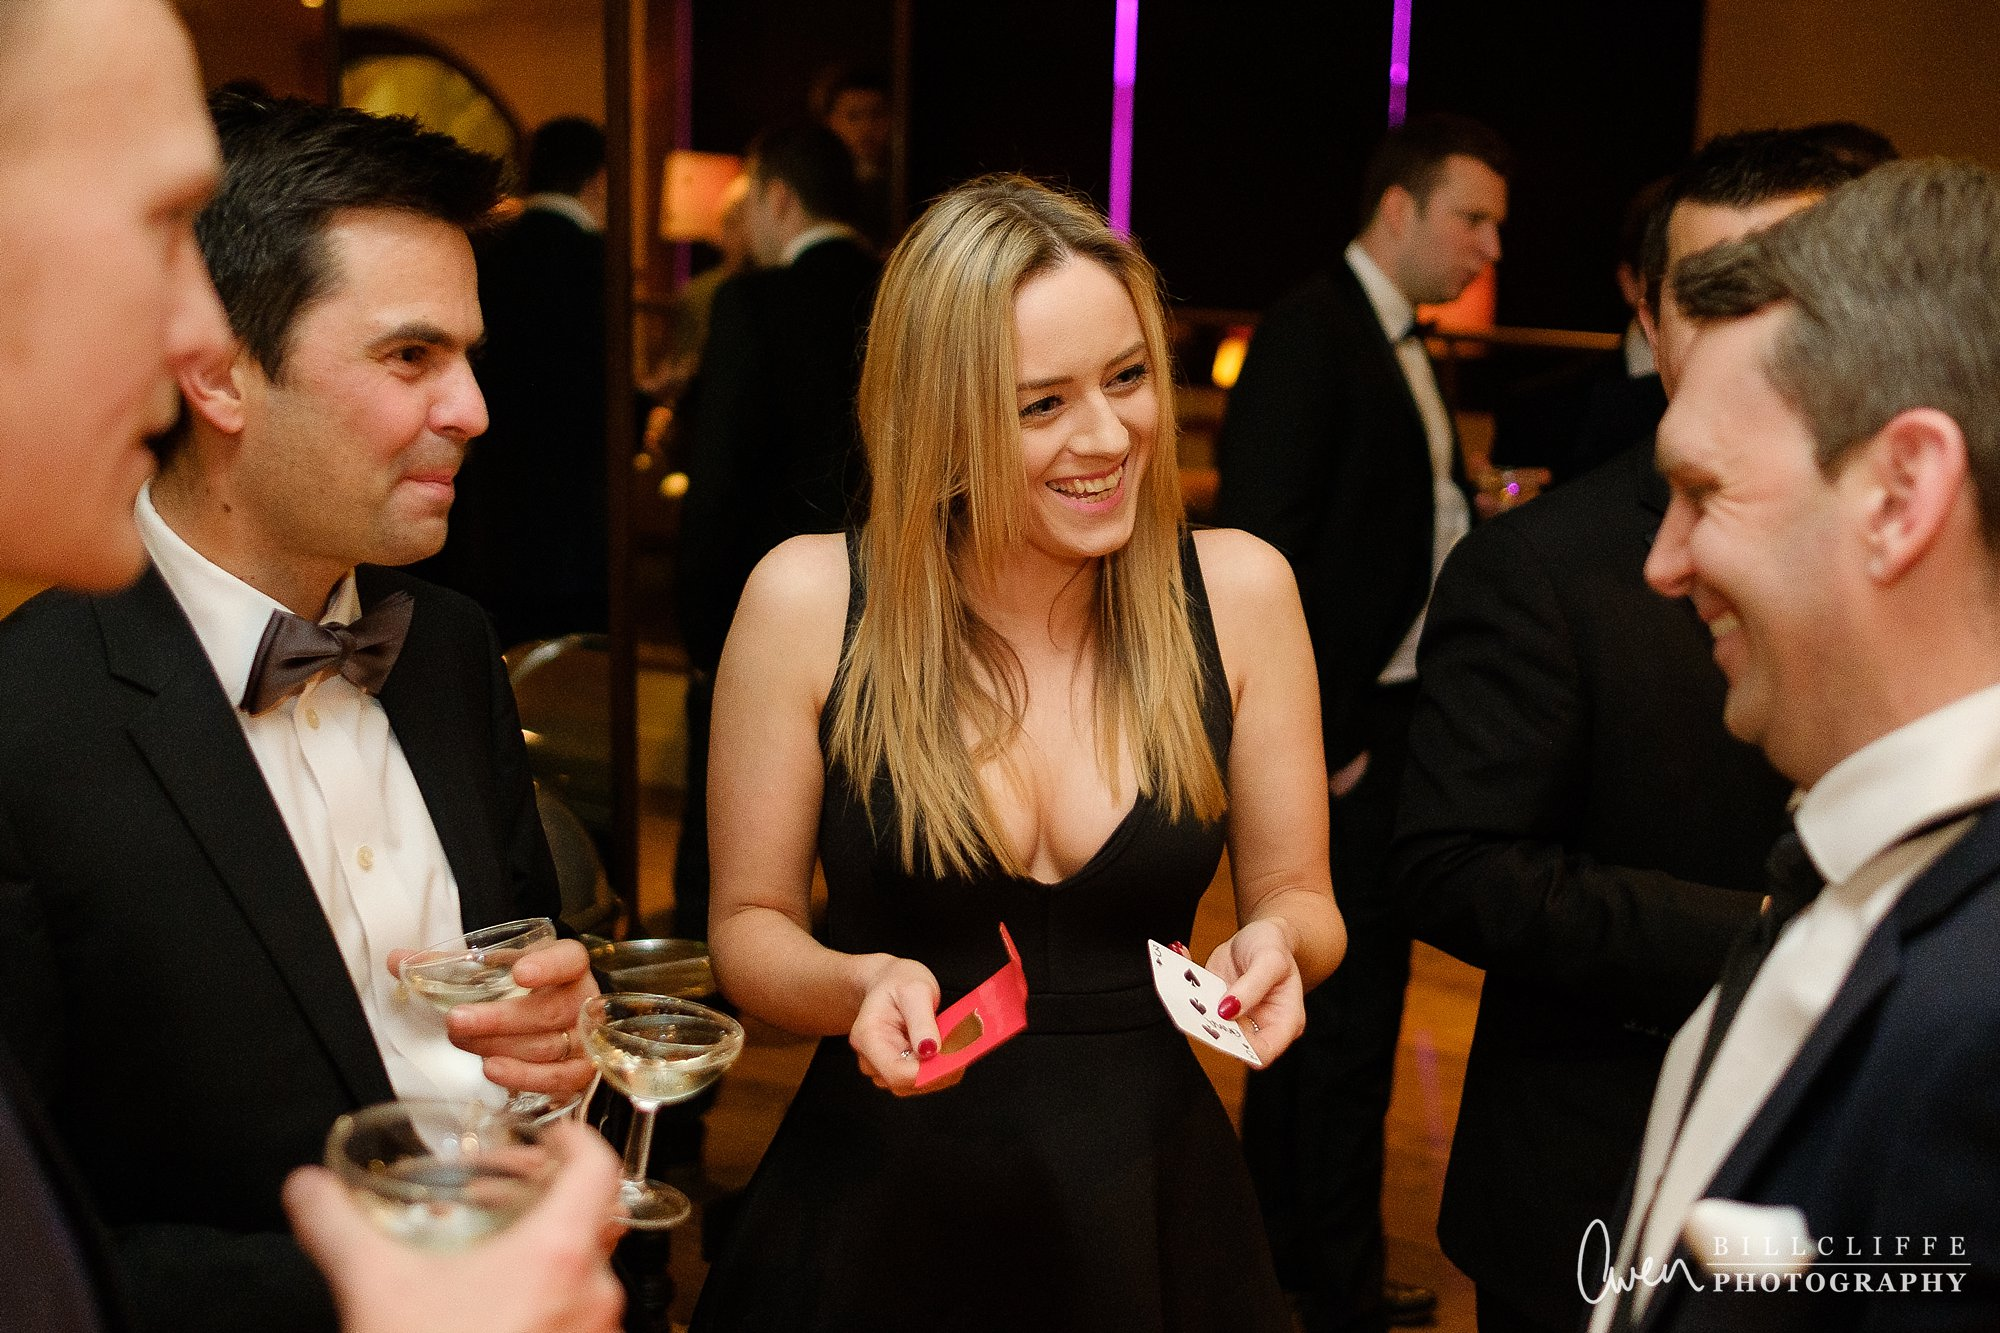 london wedding photographer magician lee smith 017 - Event Entertainer Spotlight: Lee Smith, Walkabout Magician